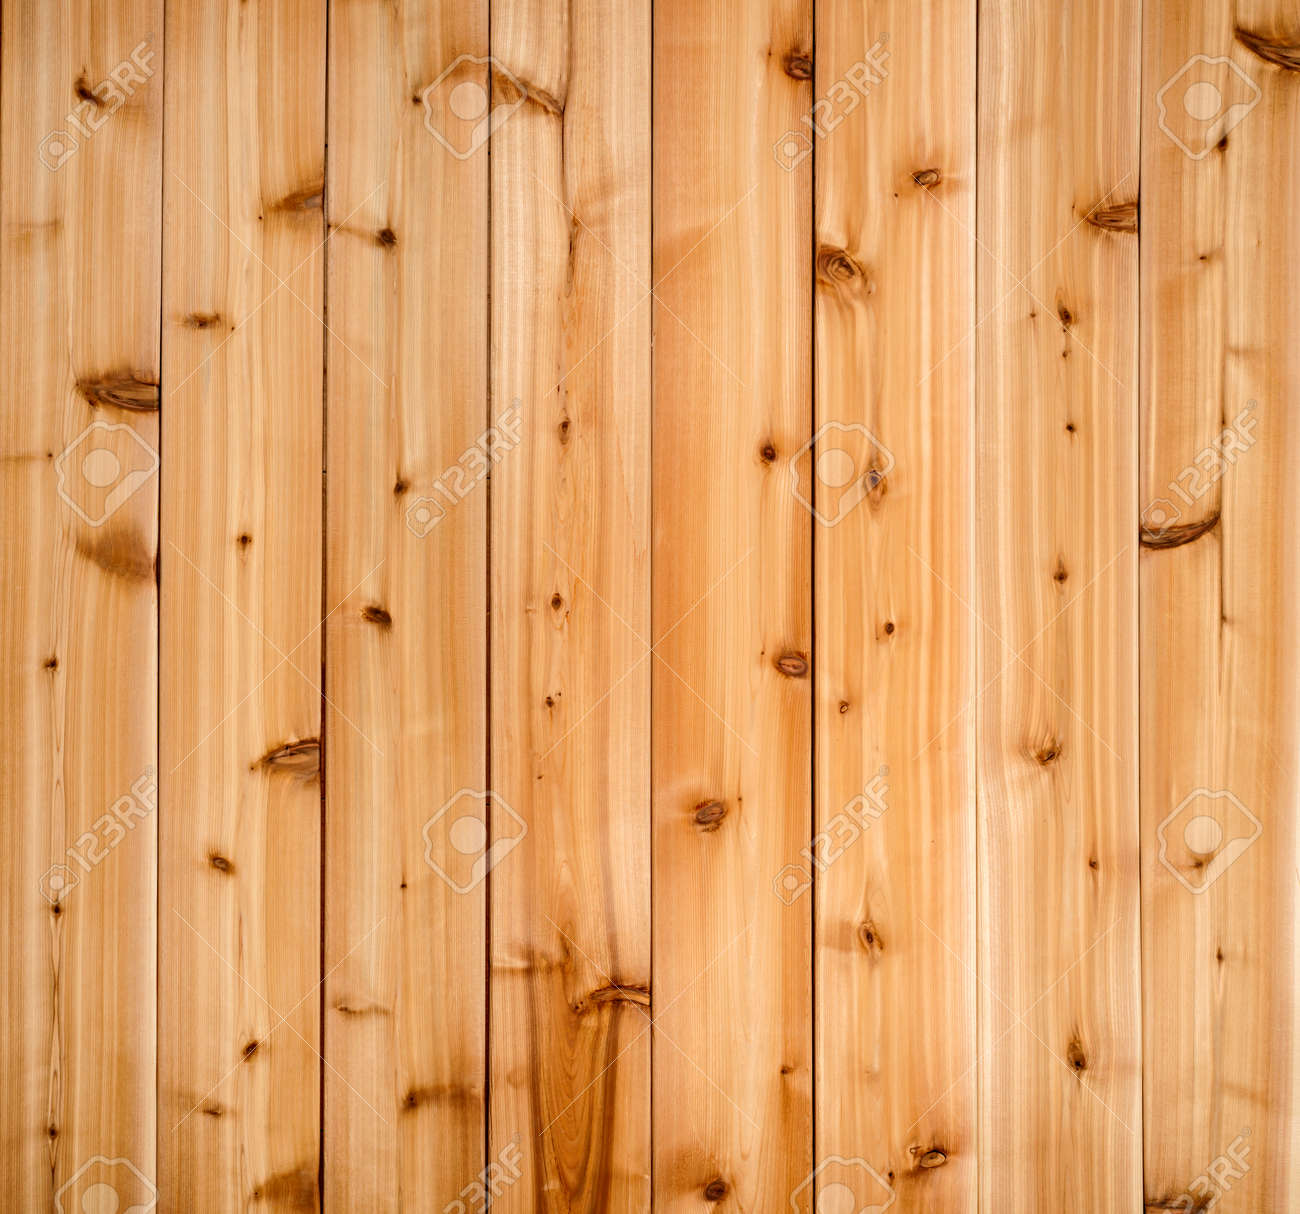 Background of wooden red cedar planks showing woodgrain texture - 29611451